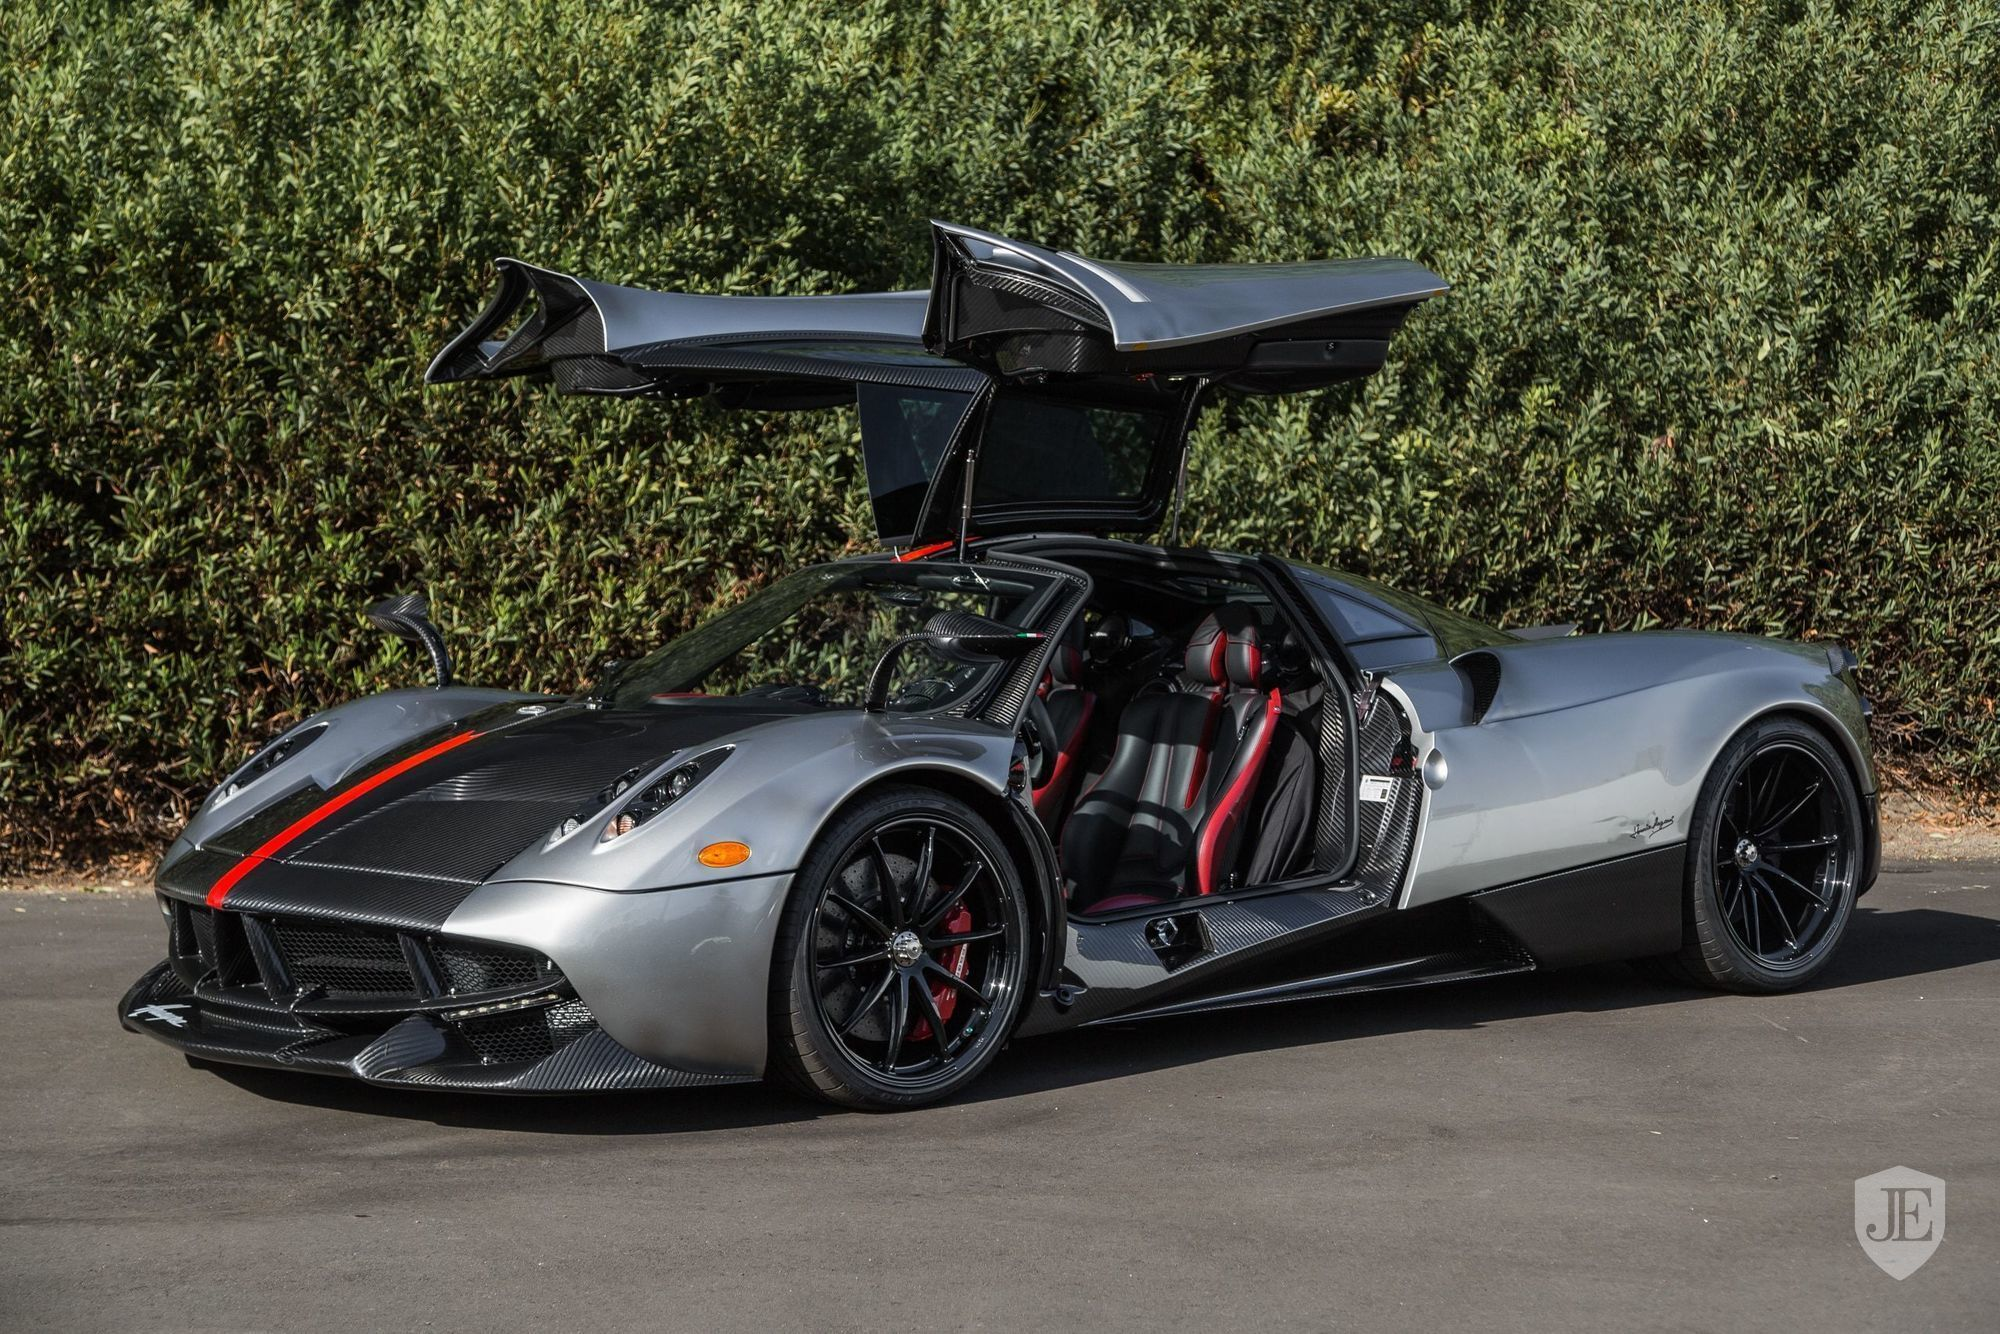 Pagani Huayra For Sale >> 2016 Pagani Huayra In Newport Beach Ca United States For Sale On